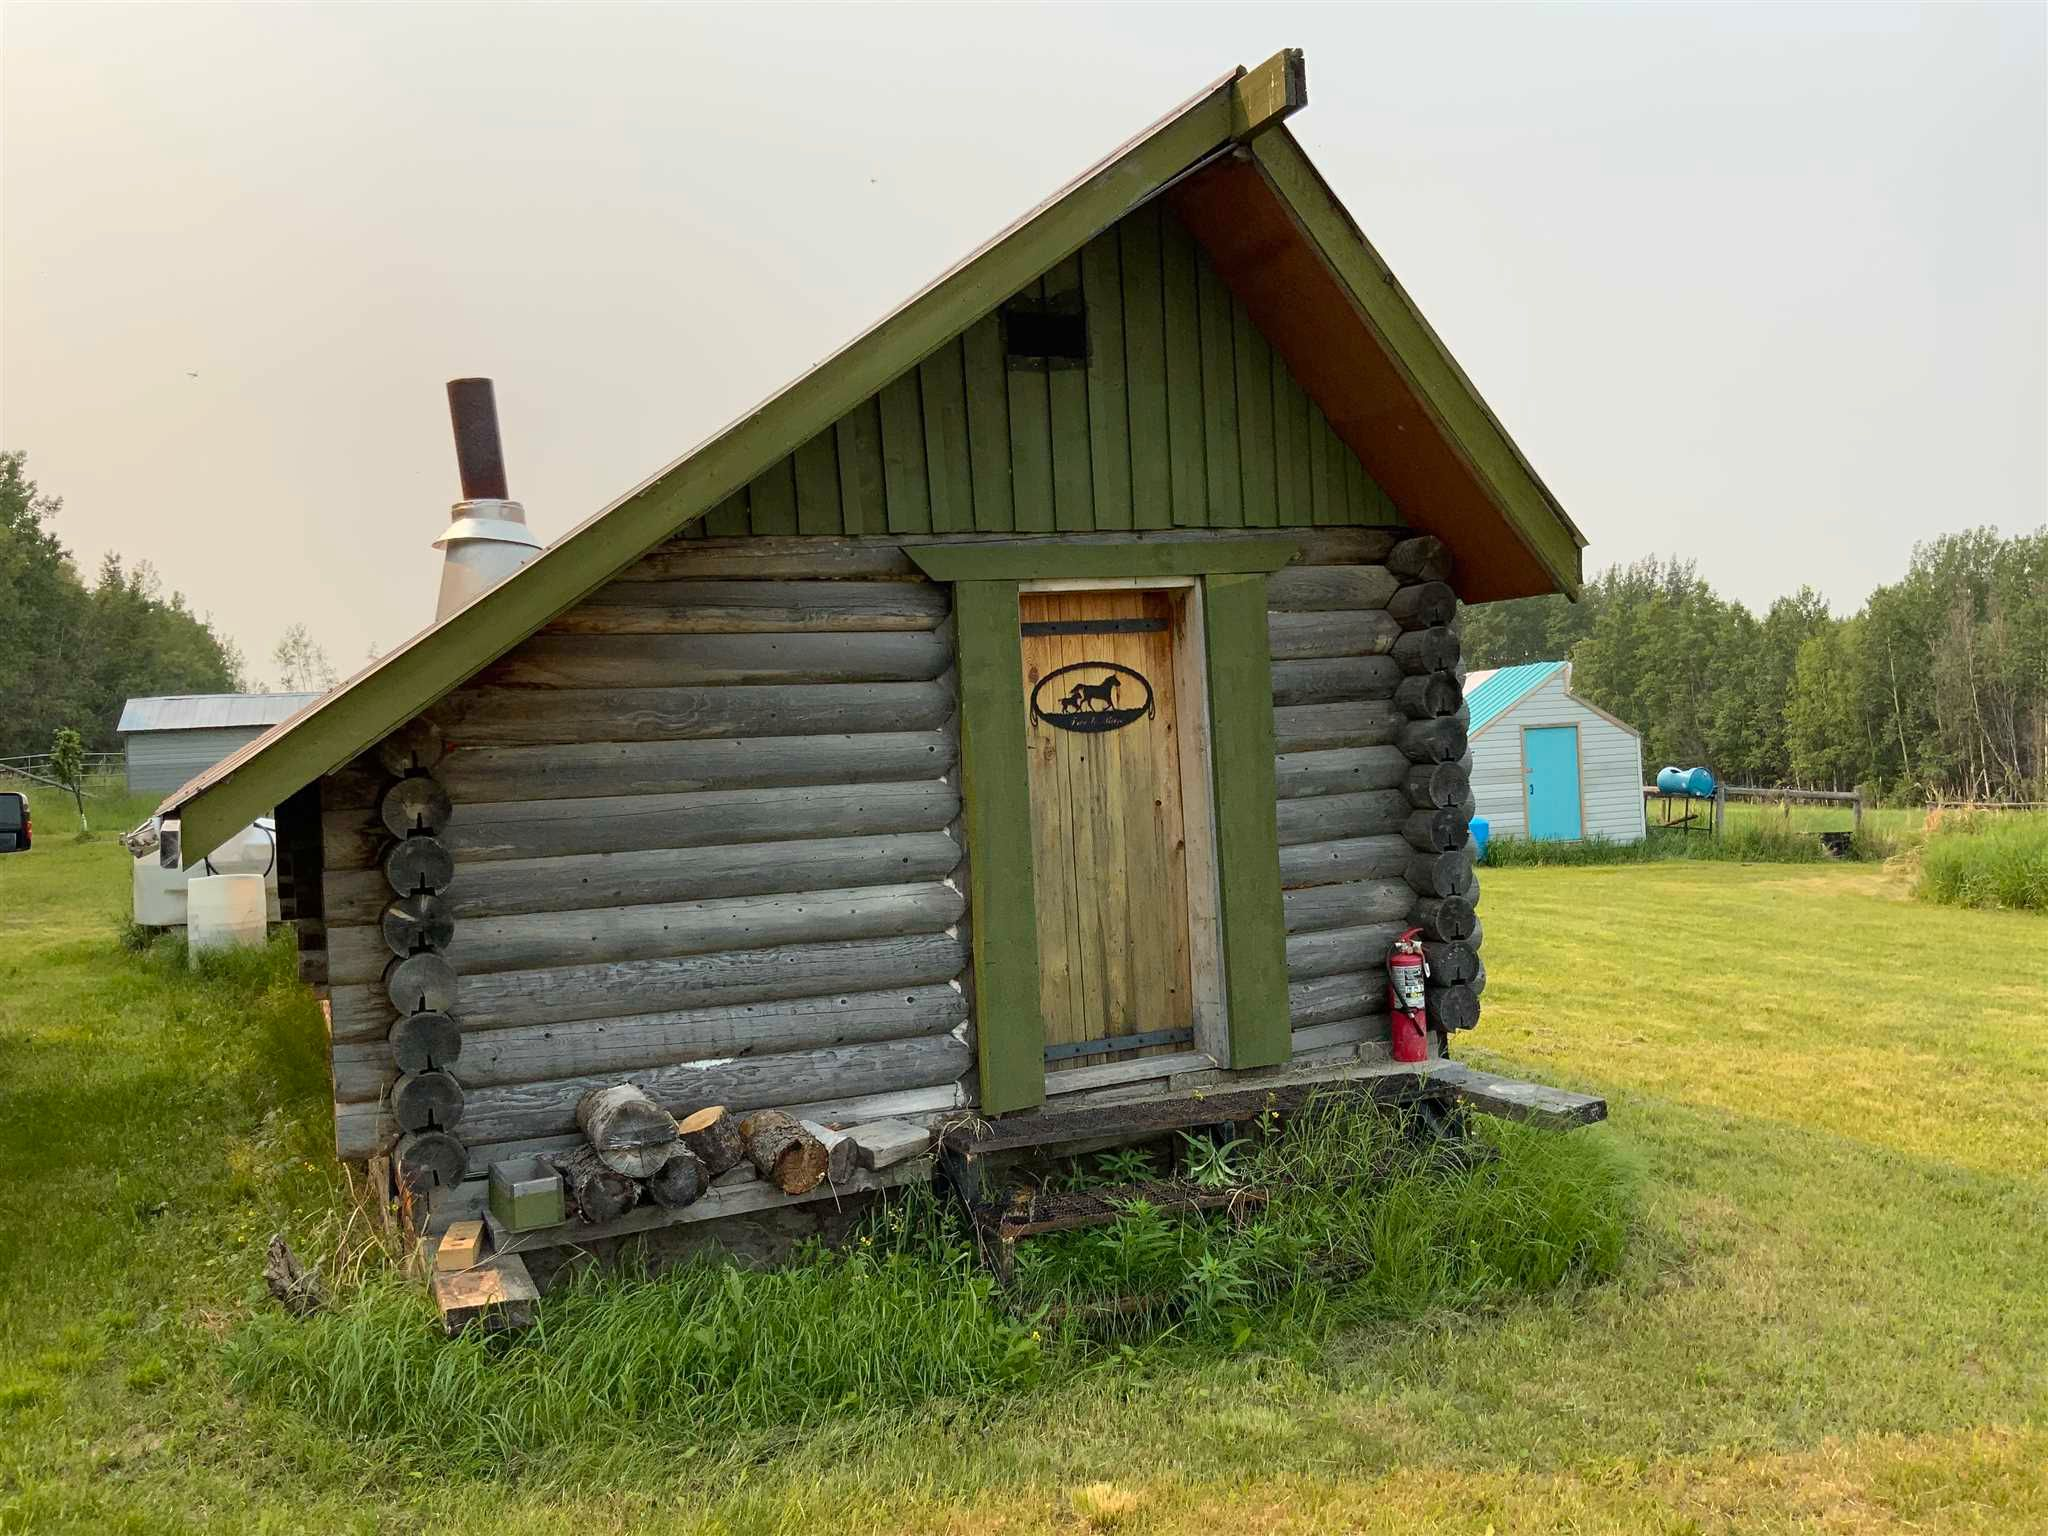 """Photo 19: Photos: 1206 GARCIA Road in Fort St. John: Fort St. John - Rural E 100th Manufactured Home for sale in """"GARCIA ROAD"""" (Fort St. John (Zone 60))  : MLS®# R2597287"""